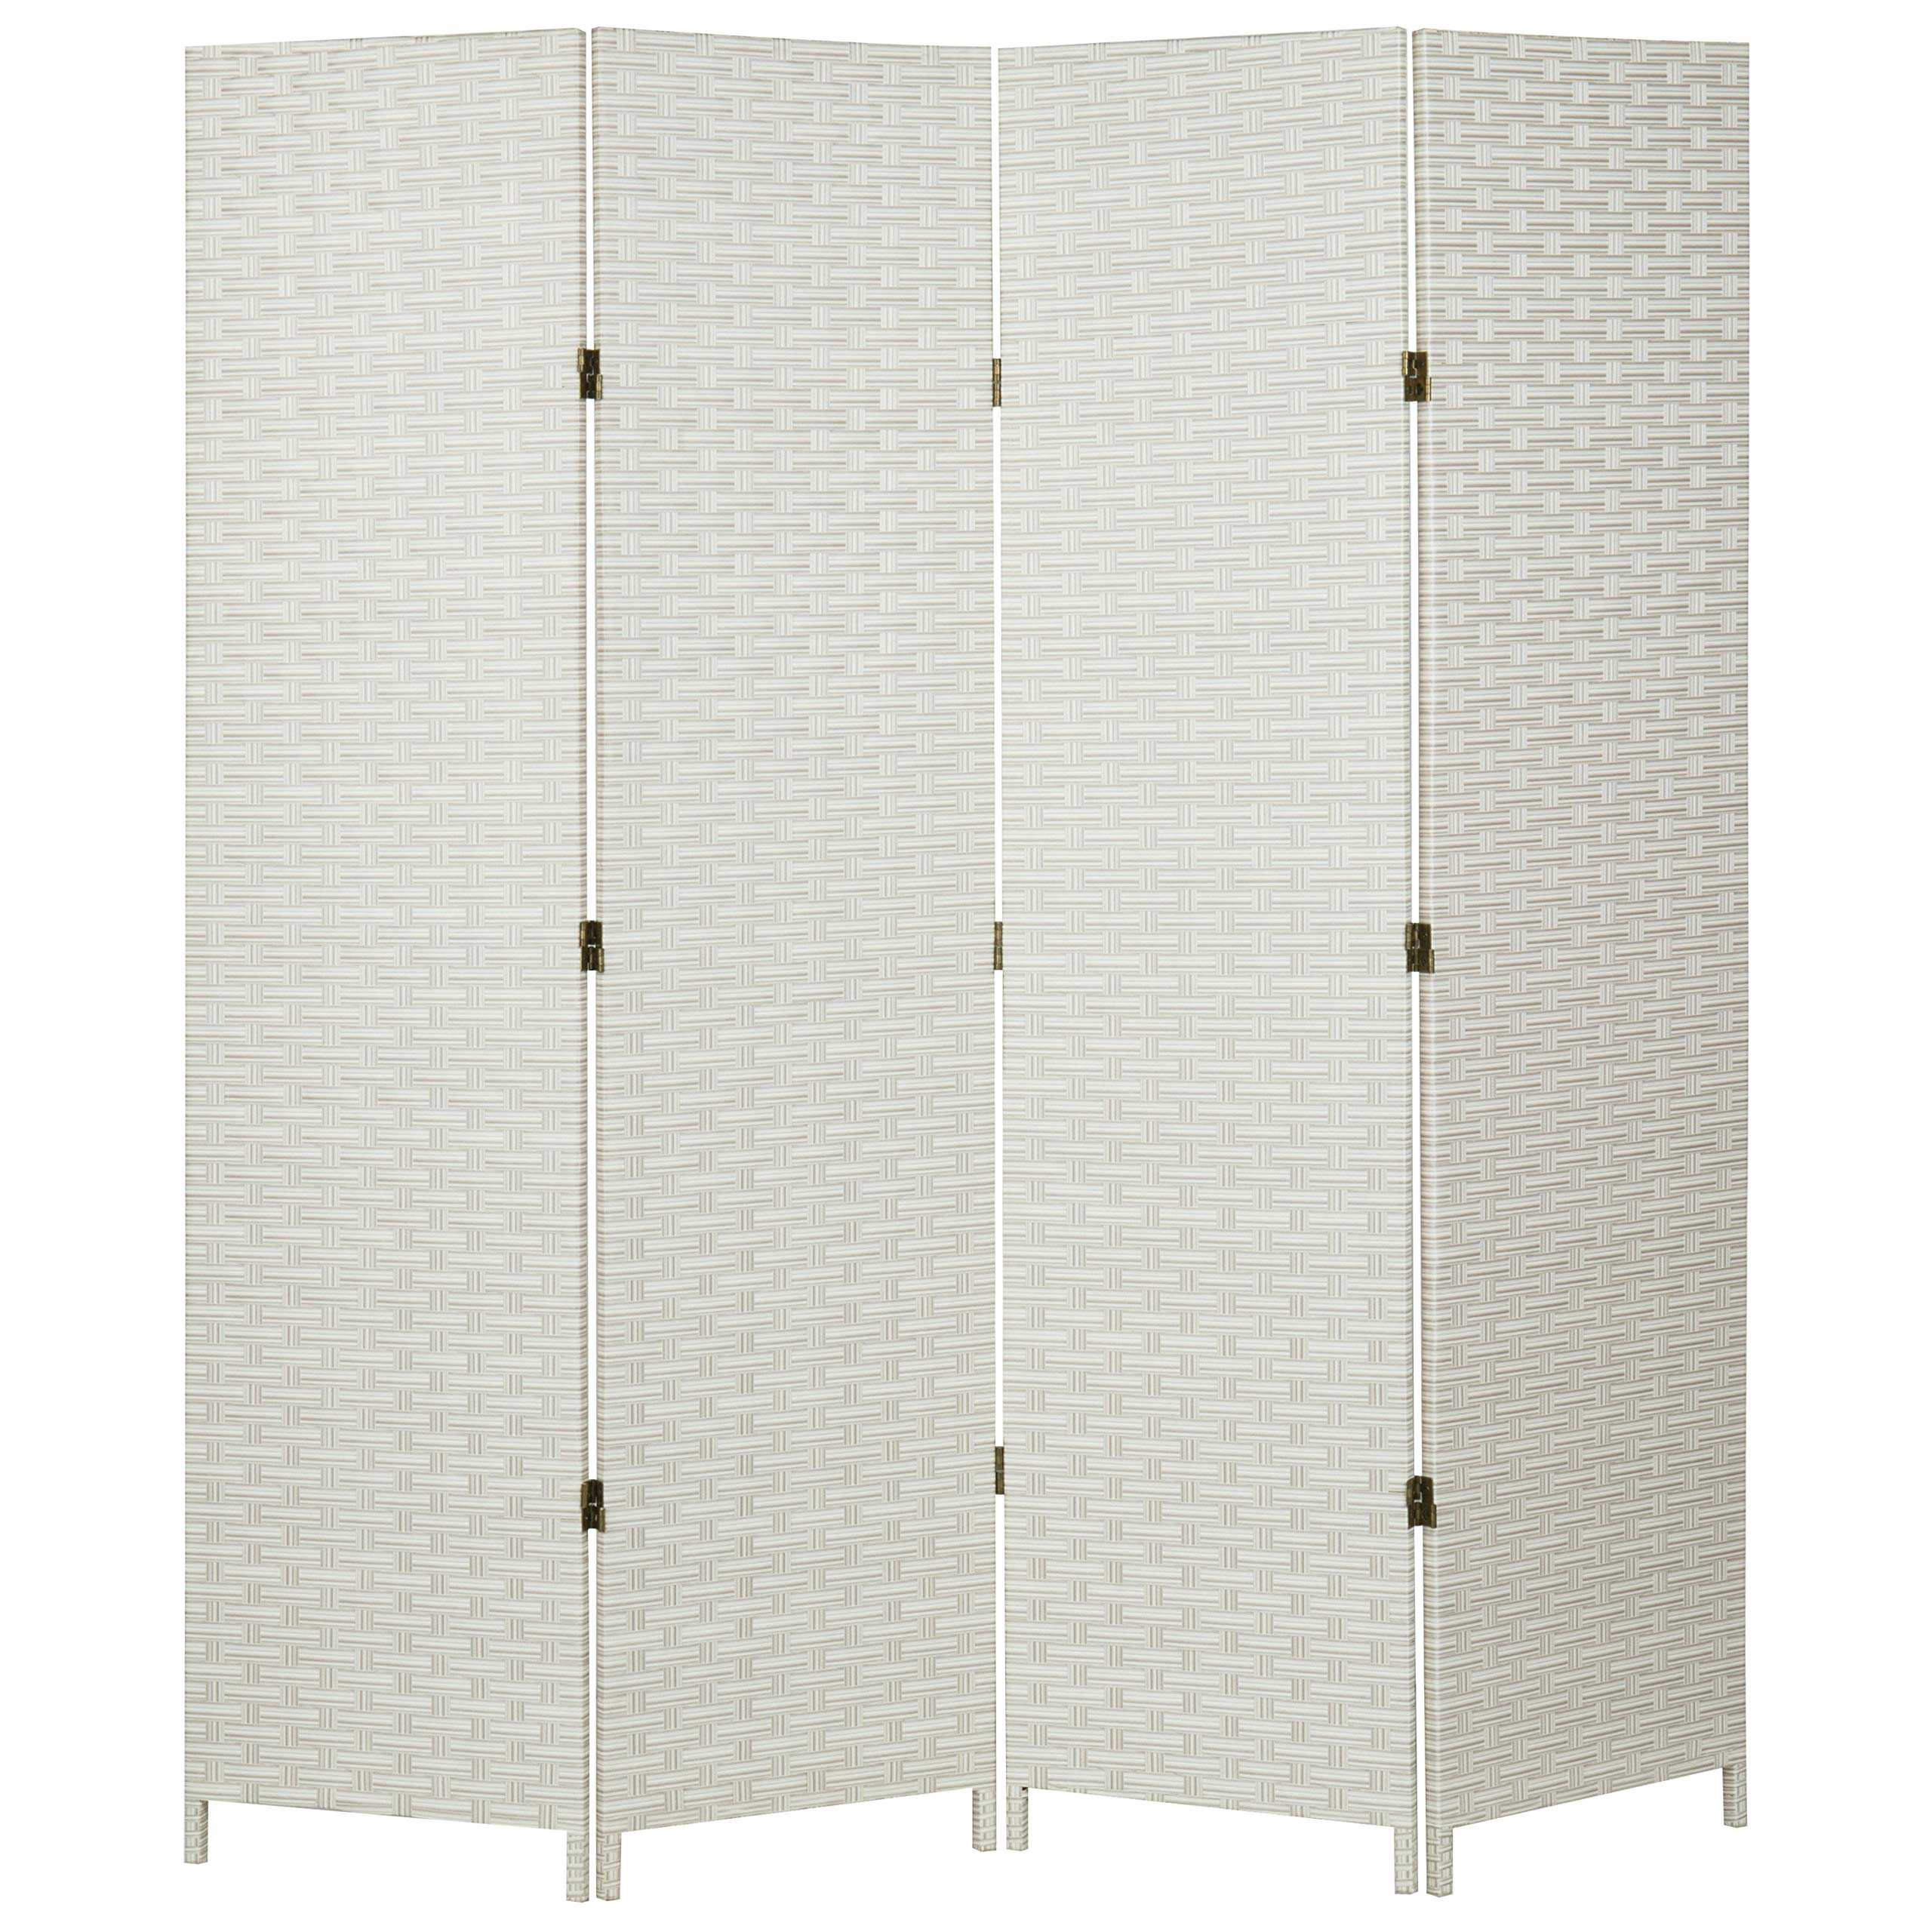 MyGift Folding Wood Room Divider, Standing 4-Panel Woven Privacy Screen, White by MyGift